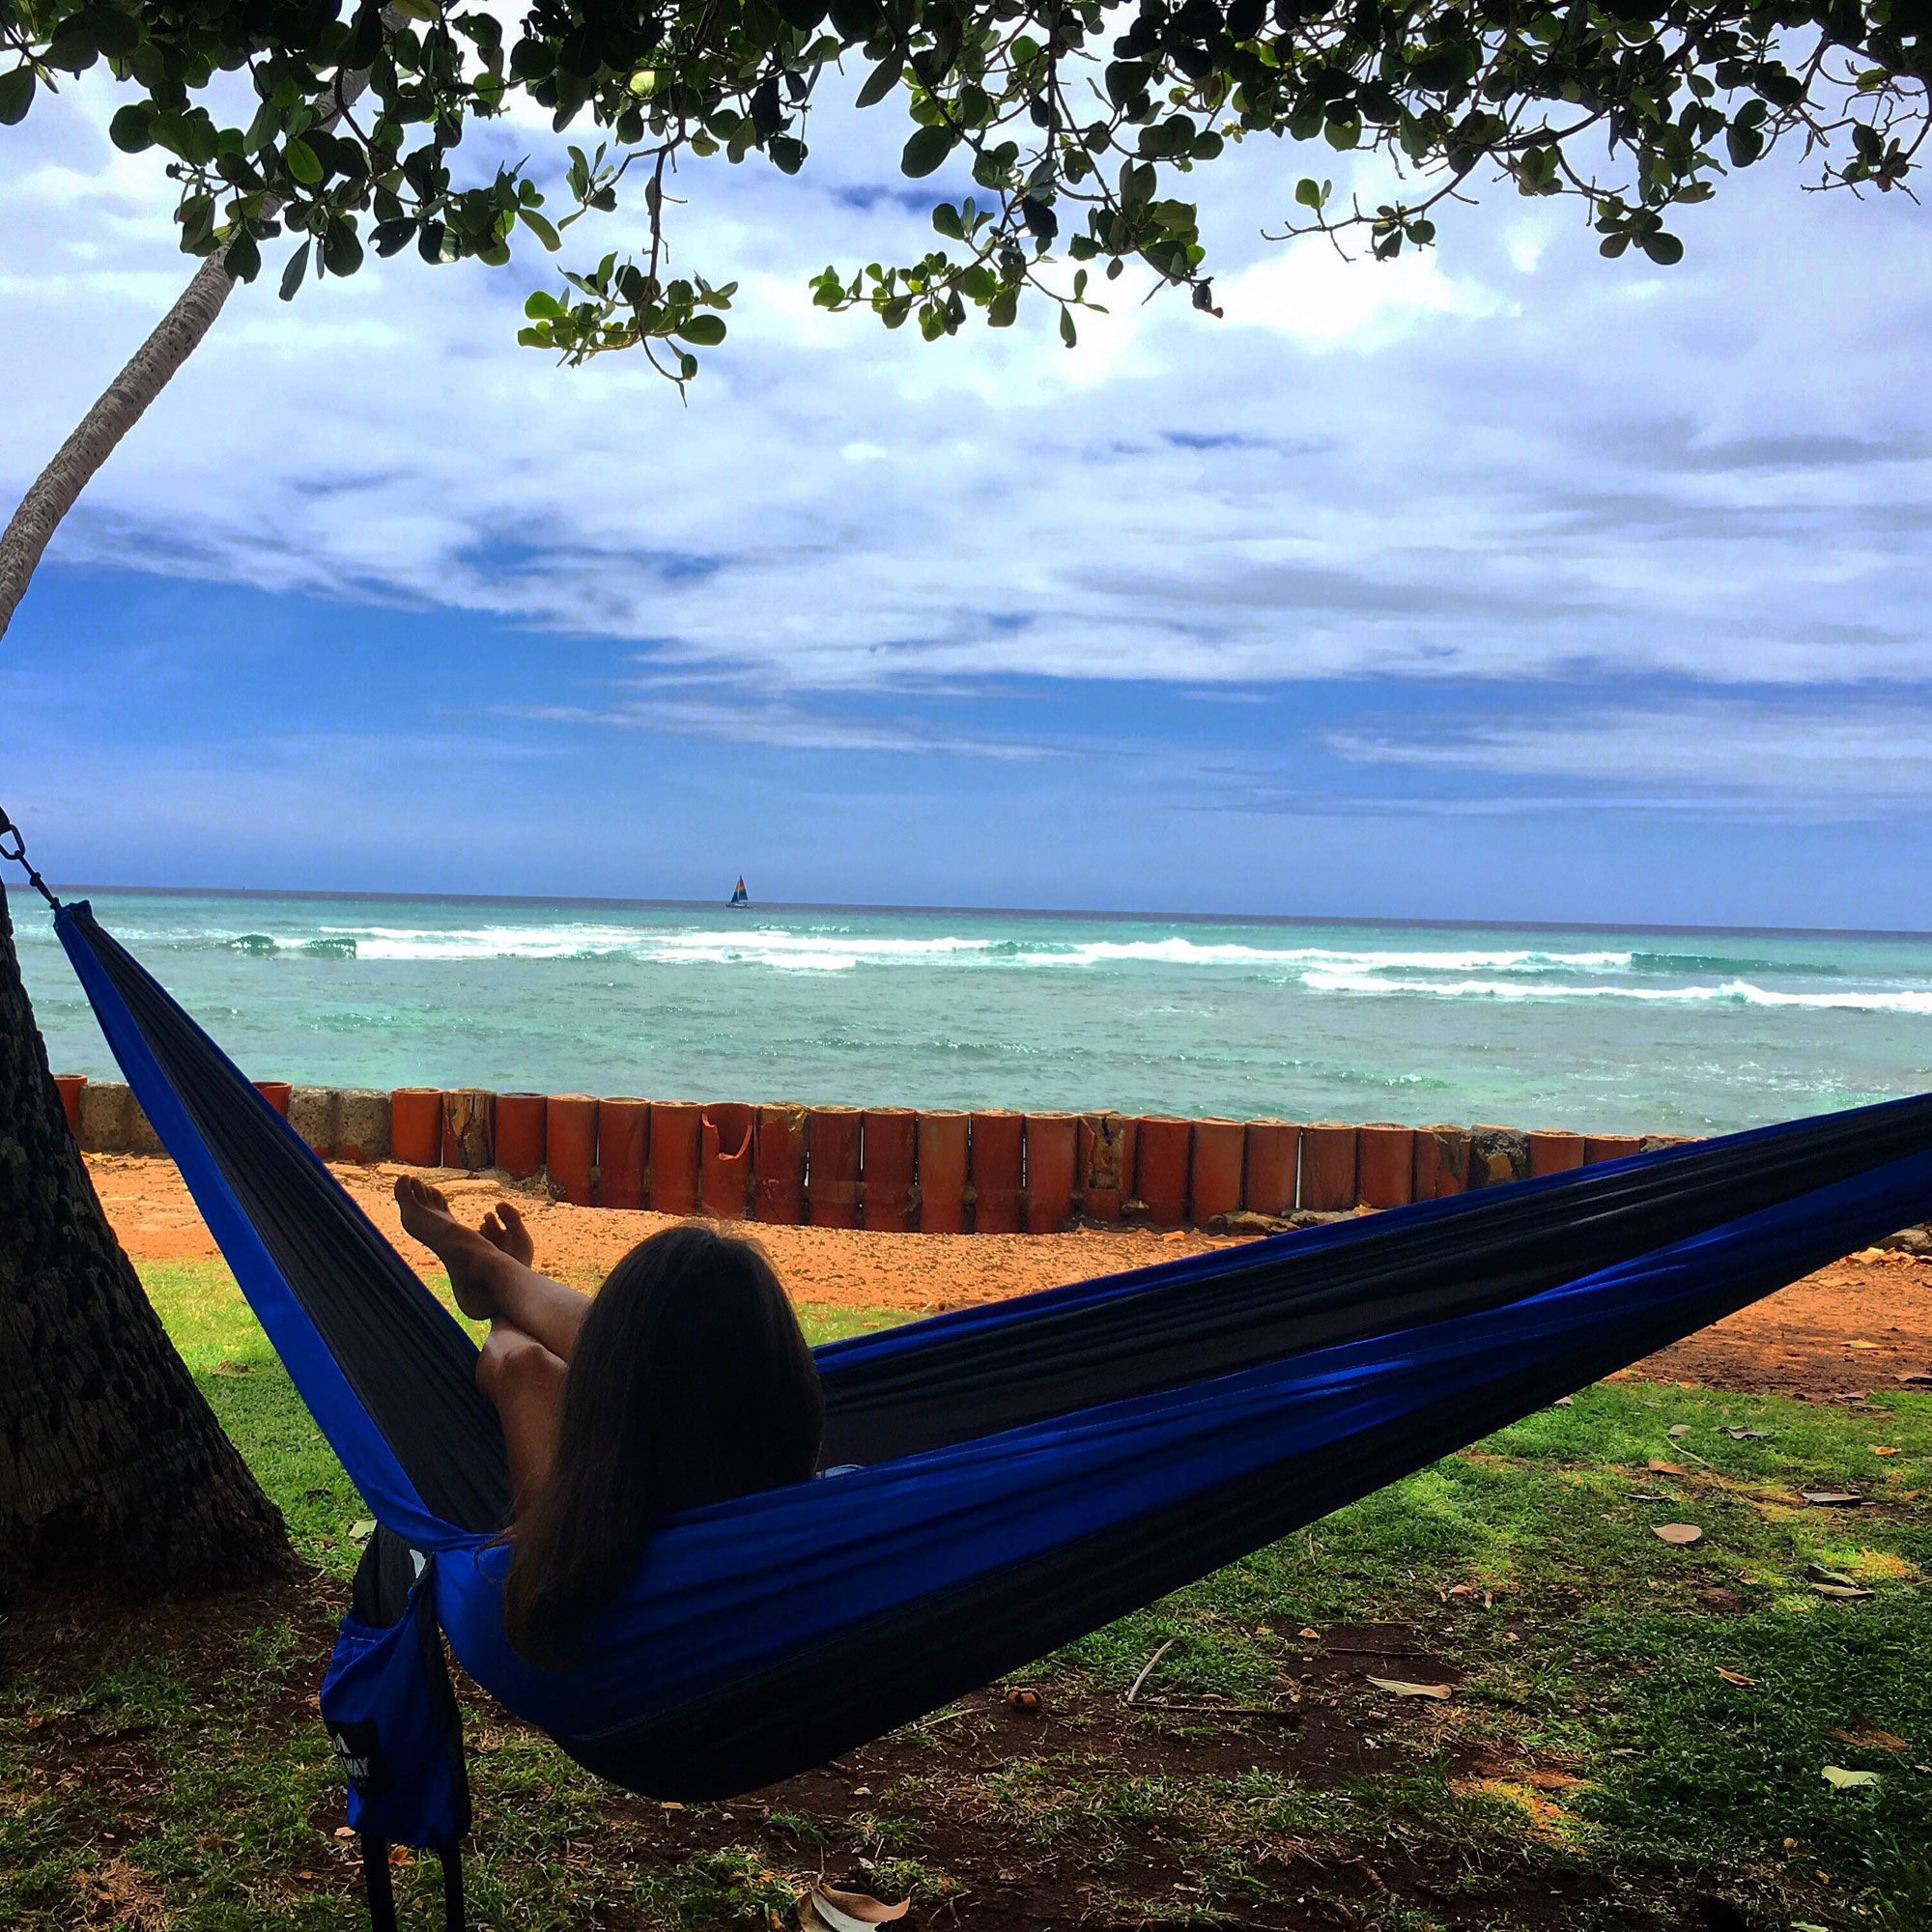 Hammocks on the beach at night - Castaway Single Travel Hammock With Hanging Straps